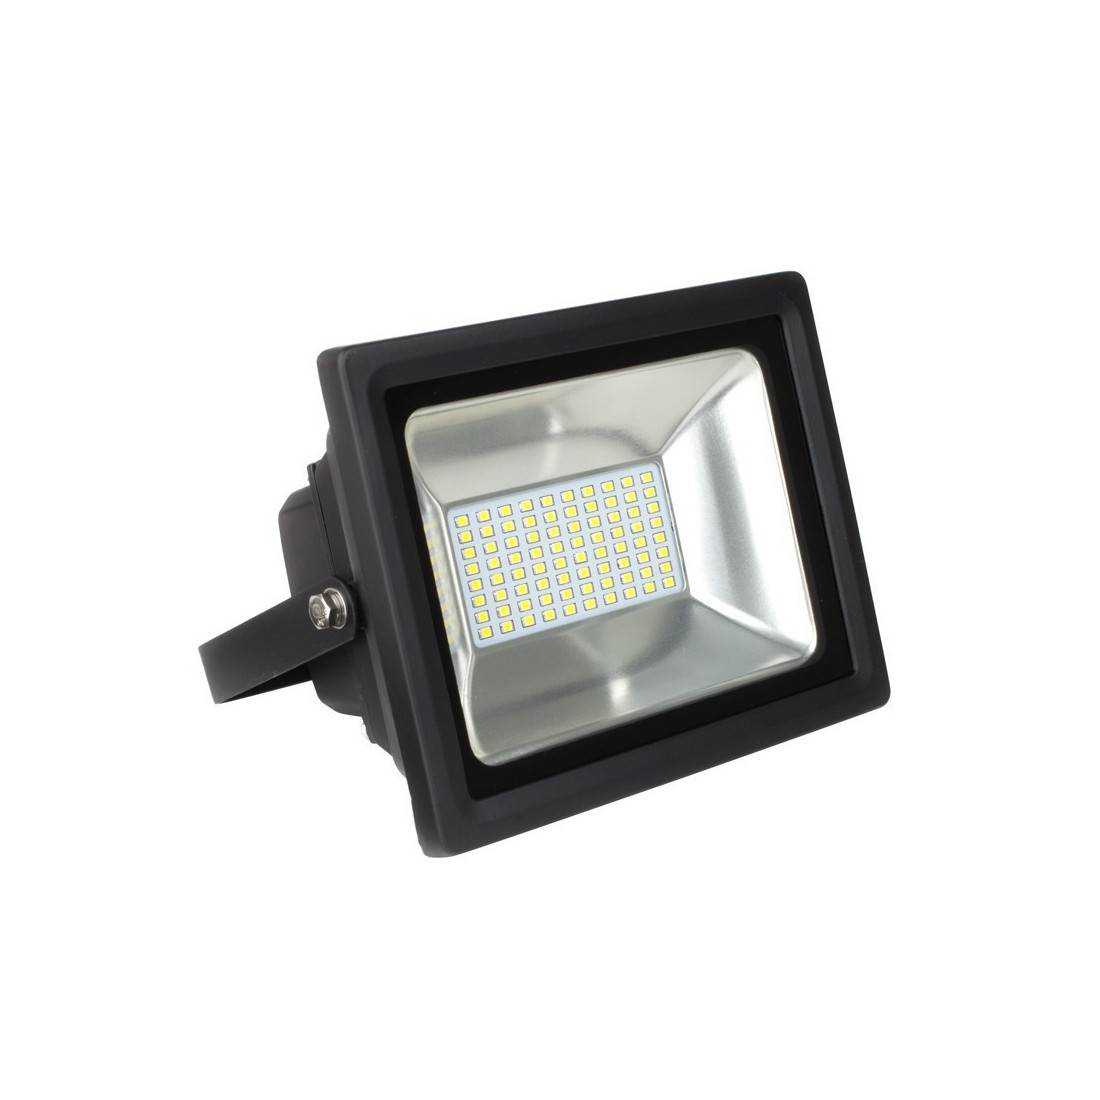 Projecteur led 30w for Projecteur a led exterieur